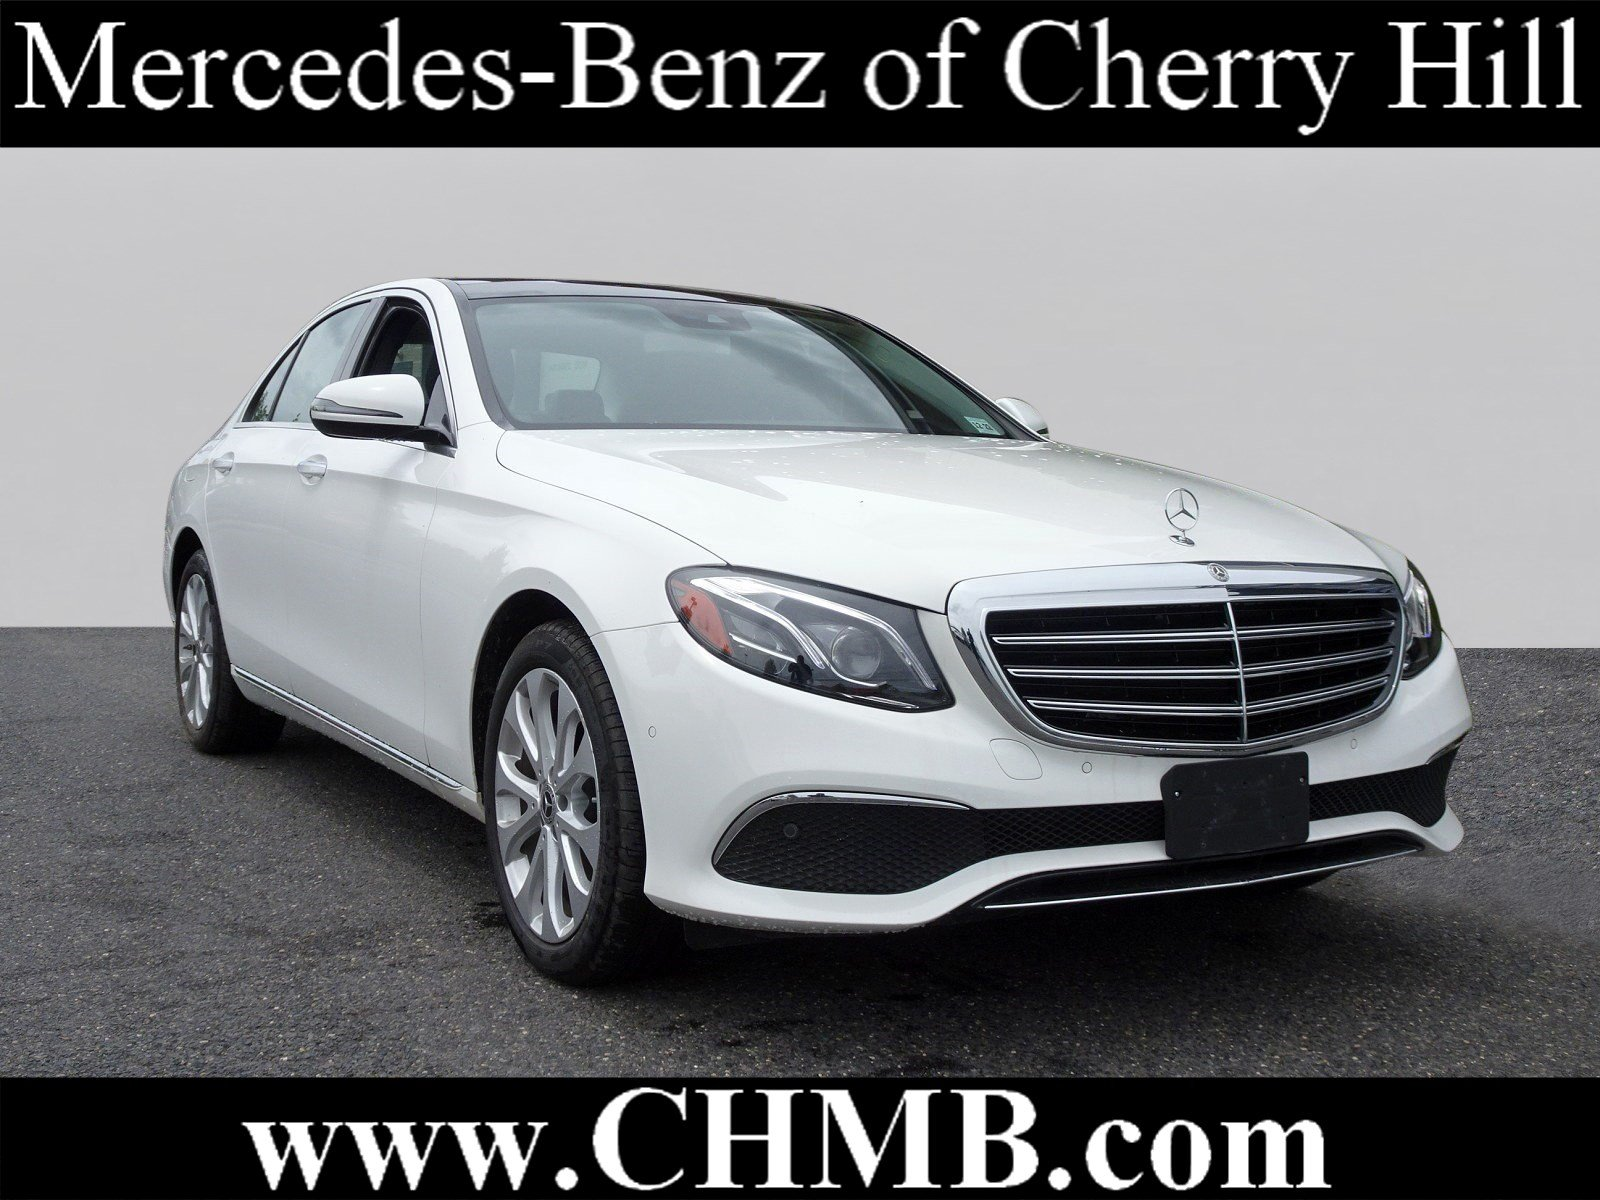 Pre Owned 2018 Mercedes Benz E Class E 300 Luxury SEDAN in Cherry